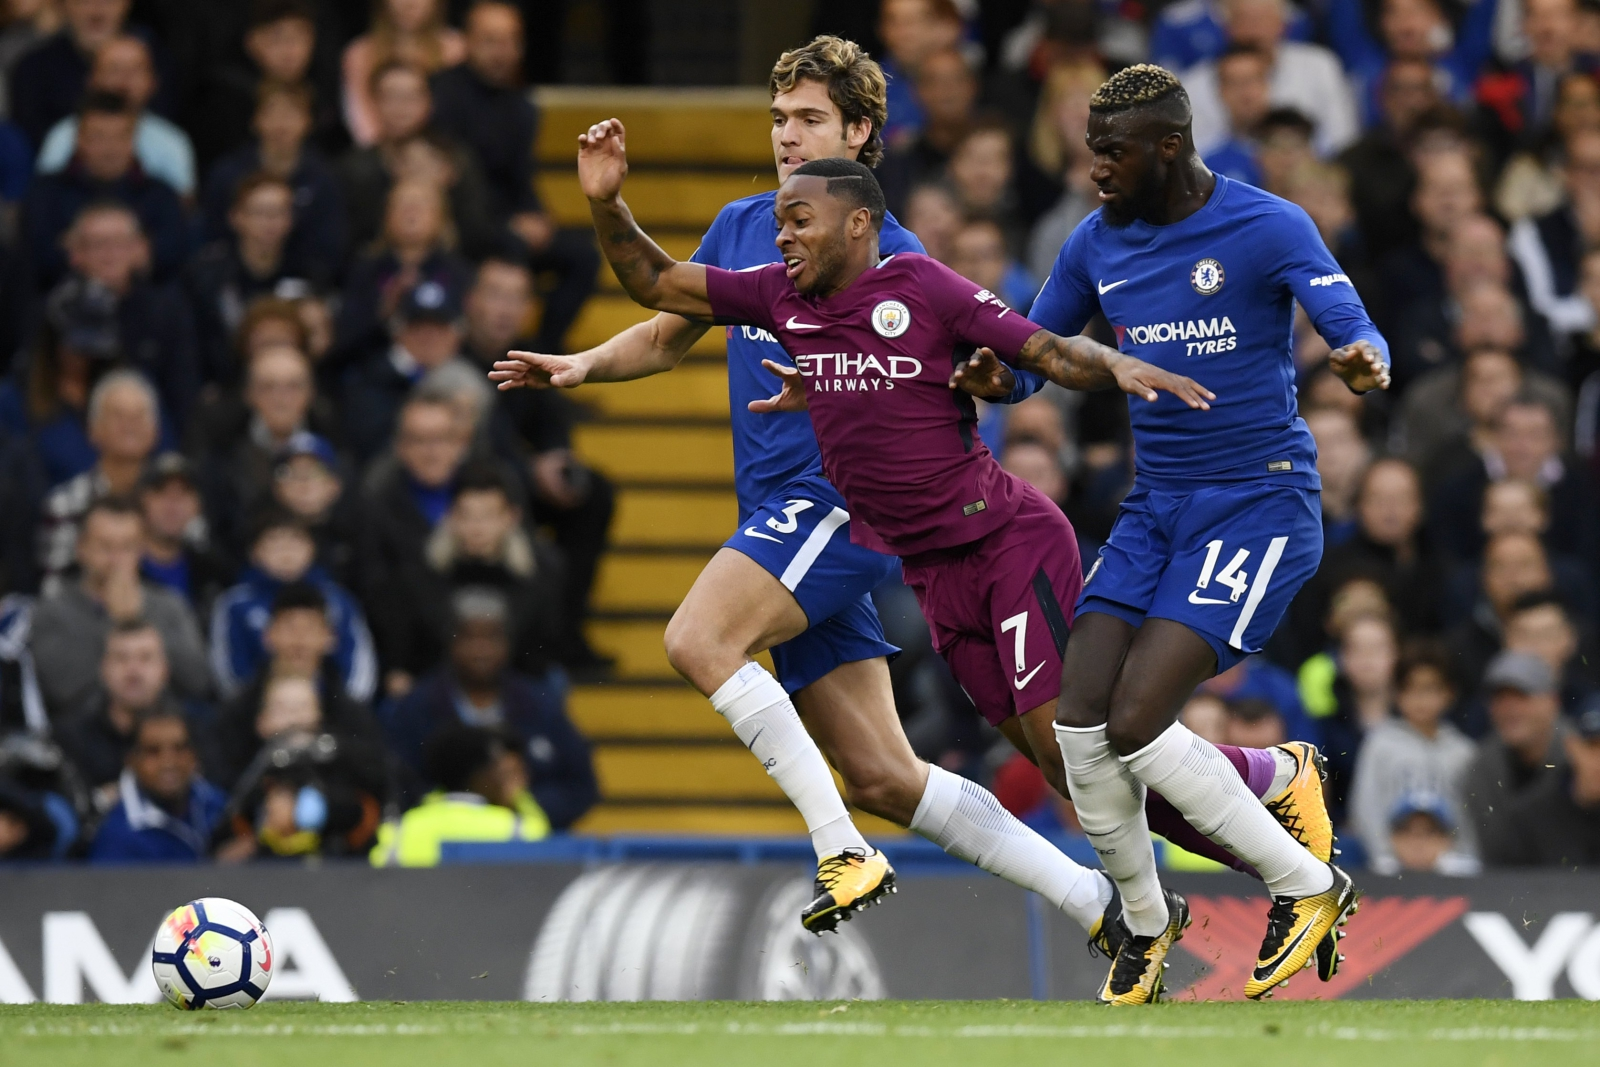 Chelsea vs Manchester City. fot. EPA/WILL OLIVER